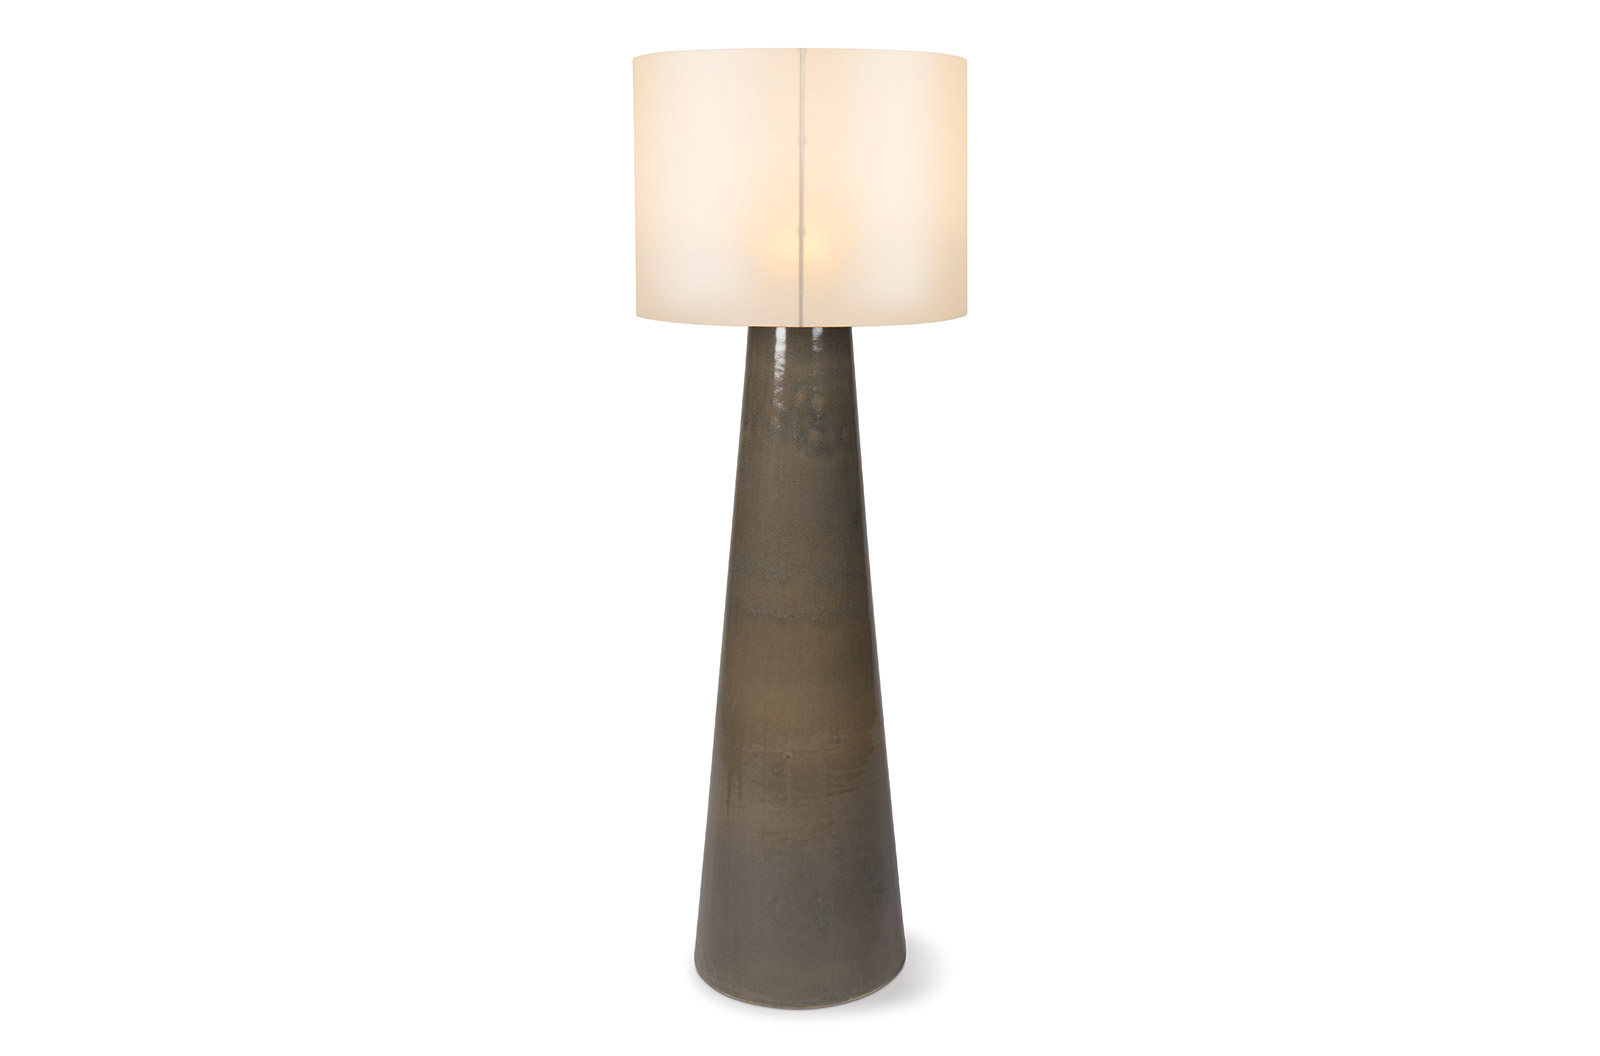 Inda copenhagen ceramic cordless outdoor led floor lamp for Cordless led floor lamp review